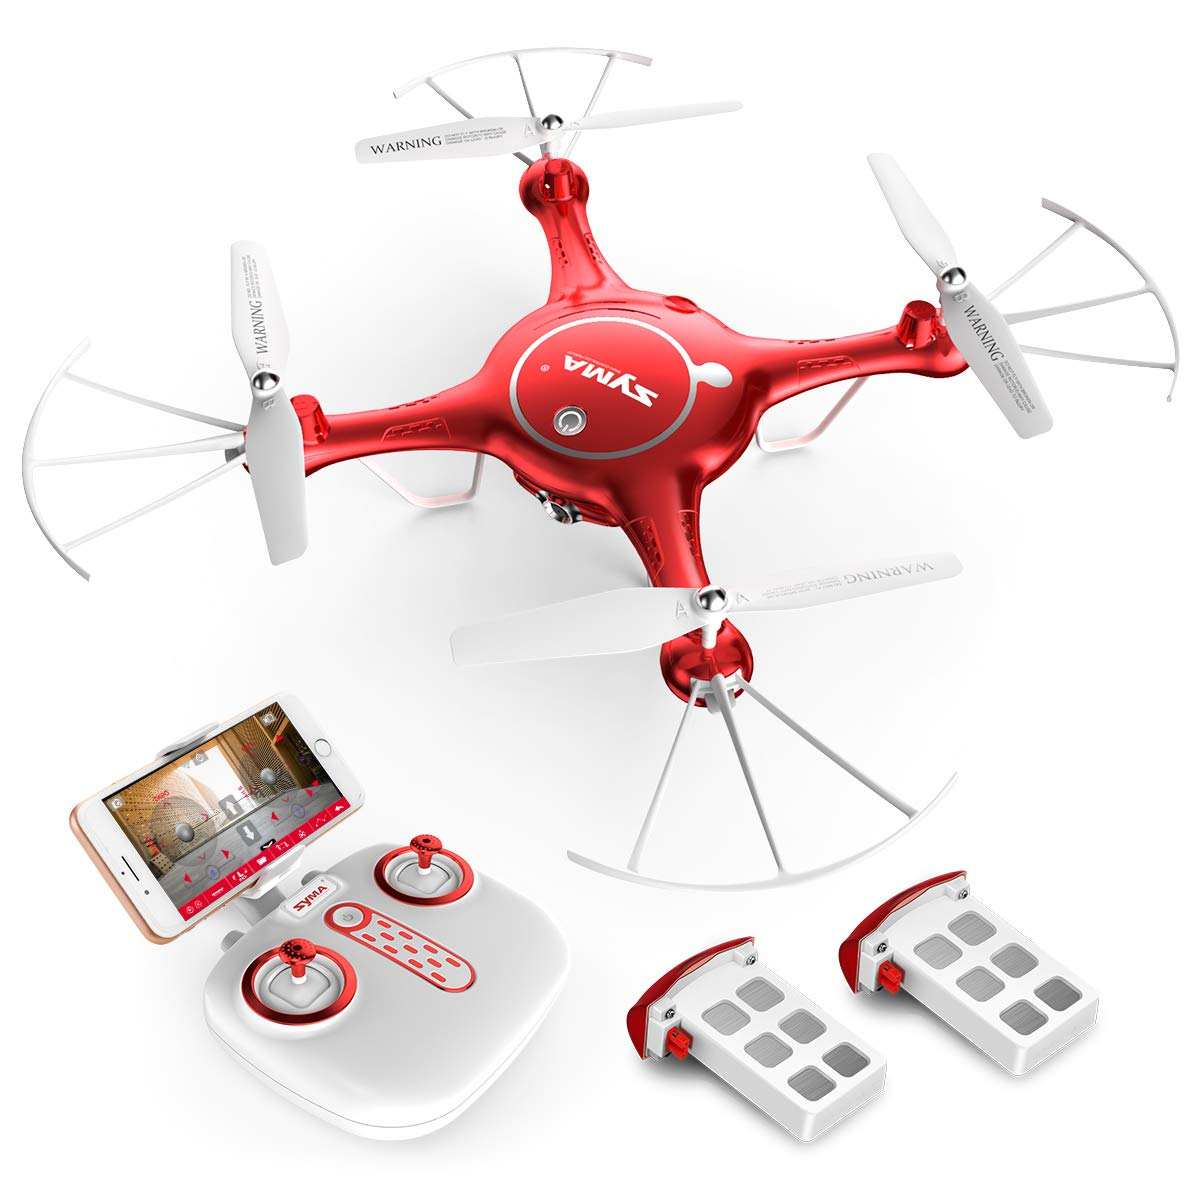 SYMA X5UW WiFi FPV 720P HD Camera Quadcopter Drone with Flight Plan Route App Control and Altitude Hold Red by SYMA